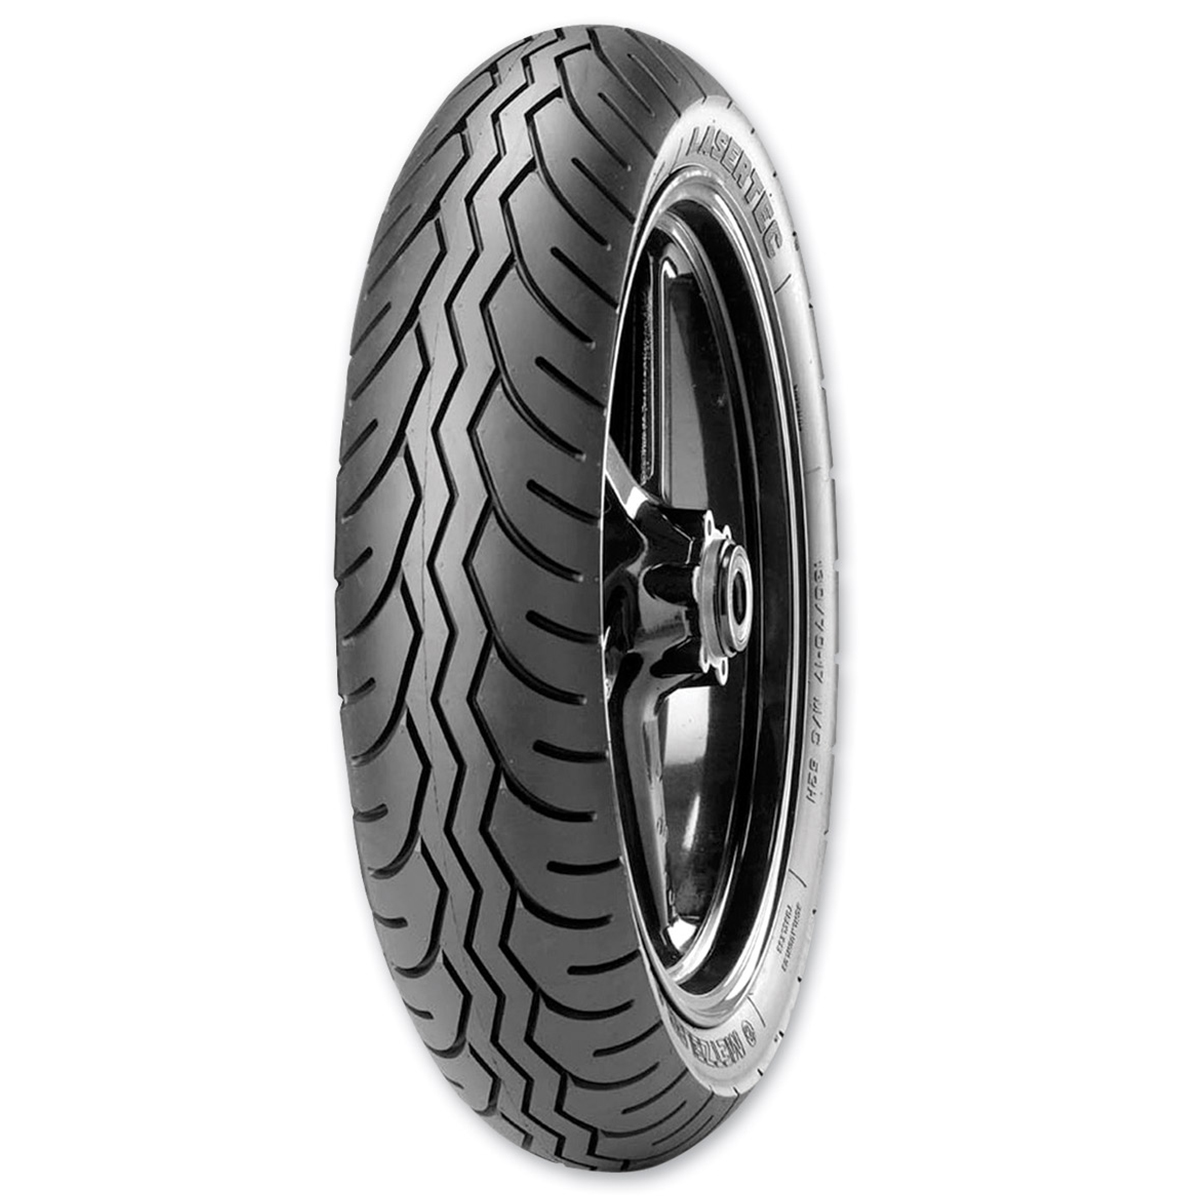 Metzeler Lasertec 120/80 17 Rear Two-Wheeler Tyre